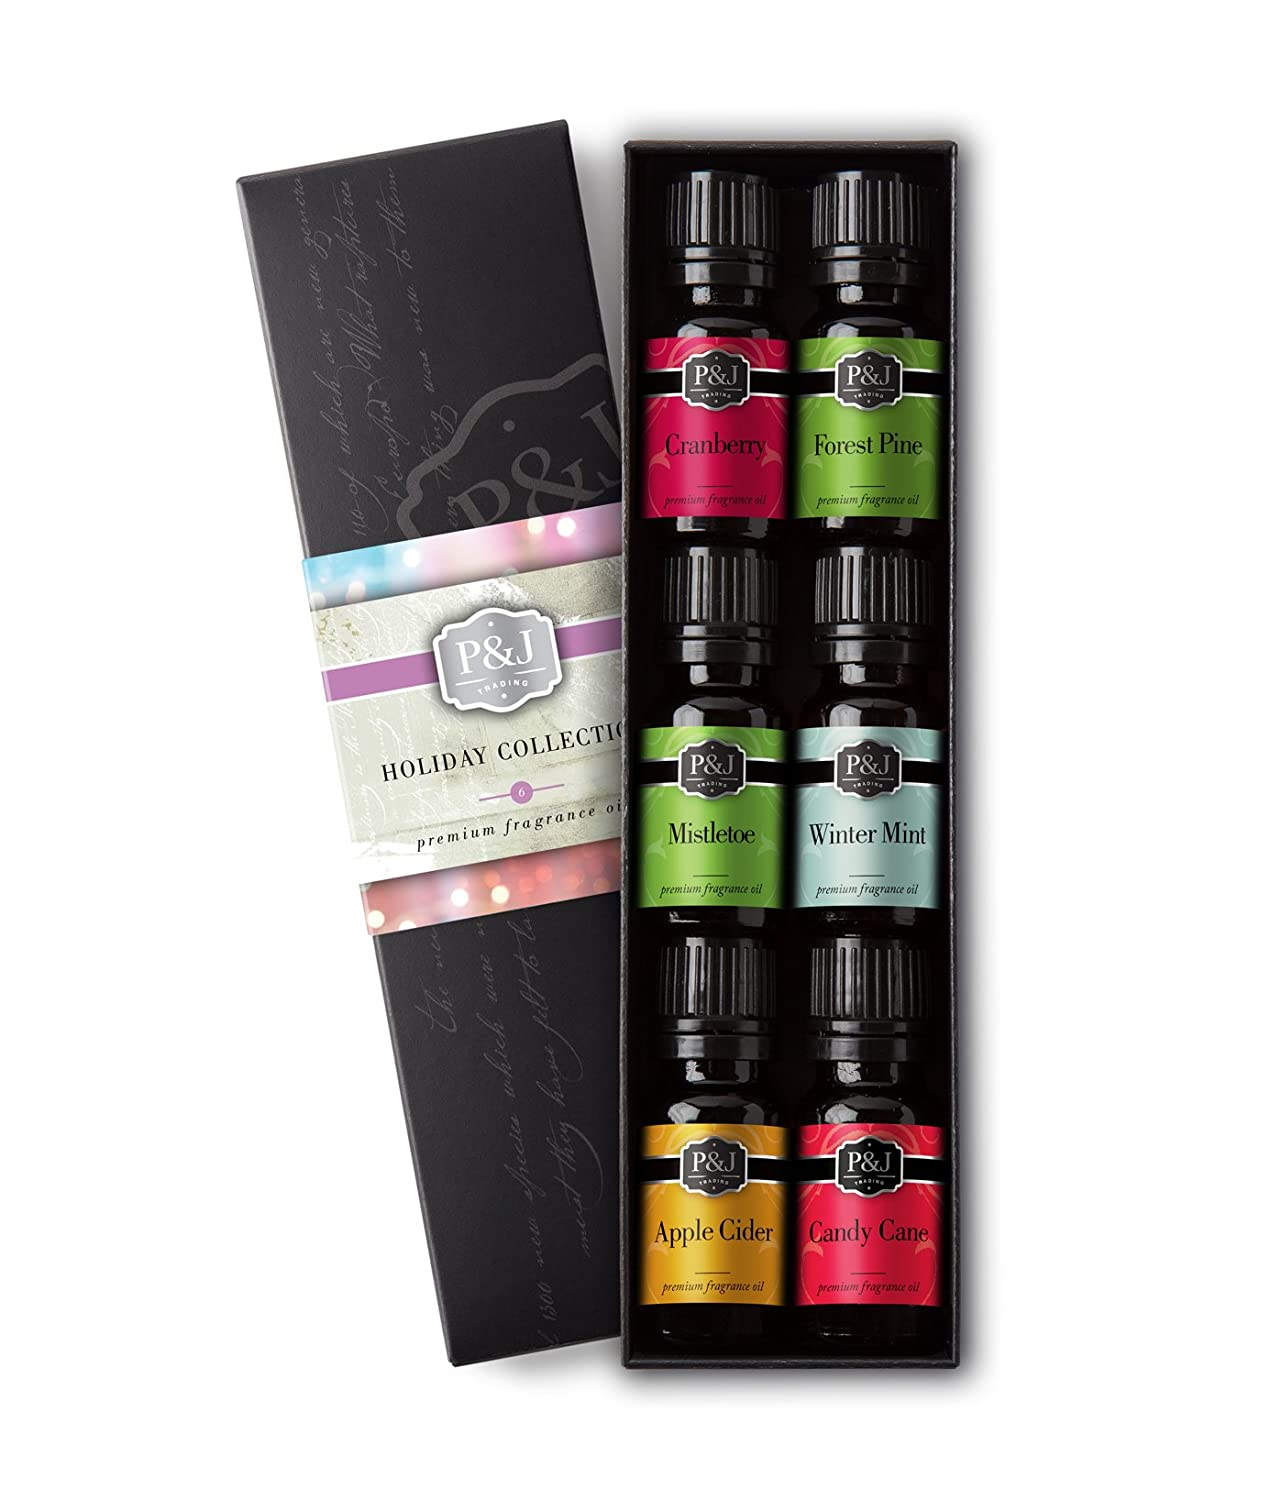 Holiday Set of 6 Premium Grade Fragrance Oils - Mistletoe, Candy Cane, Wintermint, Apple Cider, Cranberry, and Forest Pine - 10ml P&J Trading